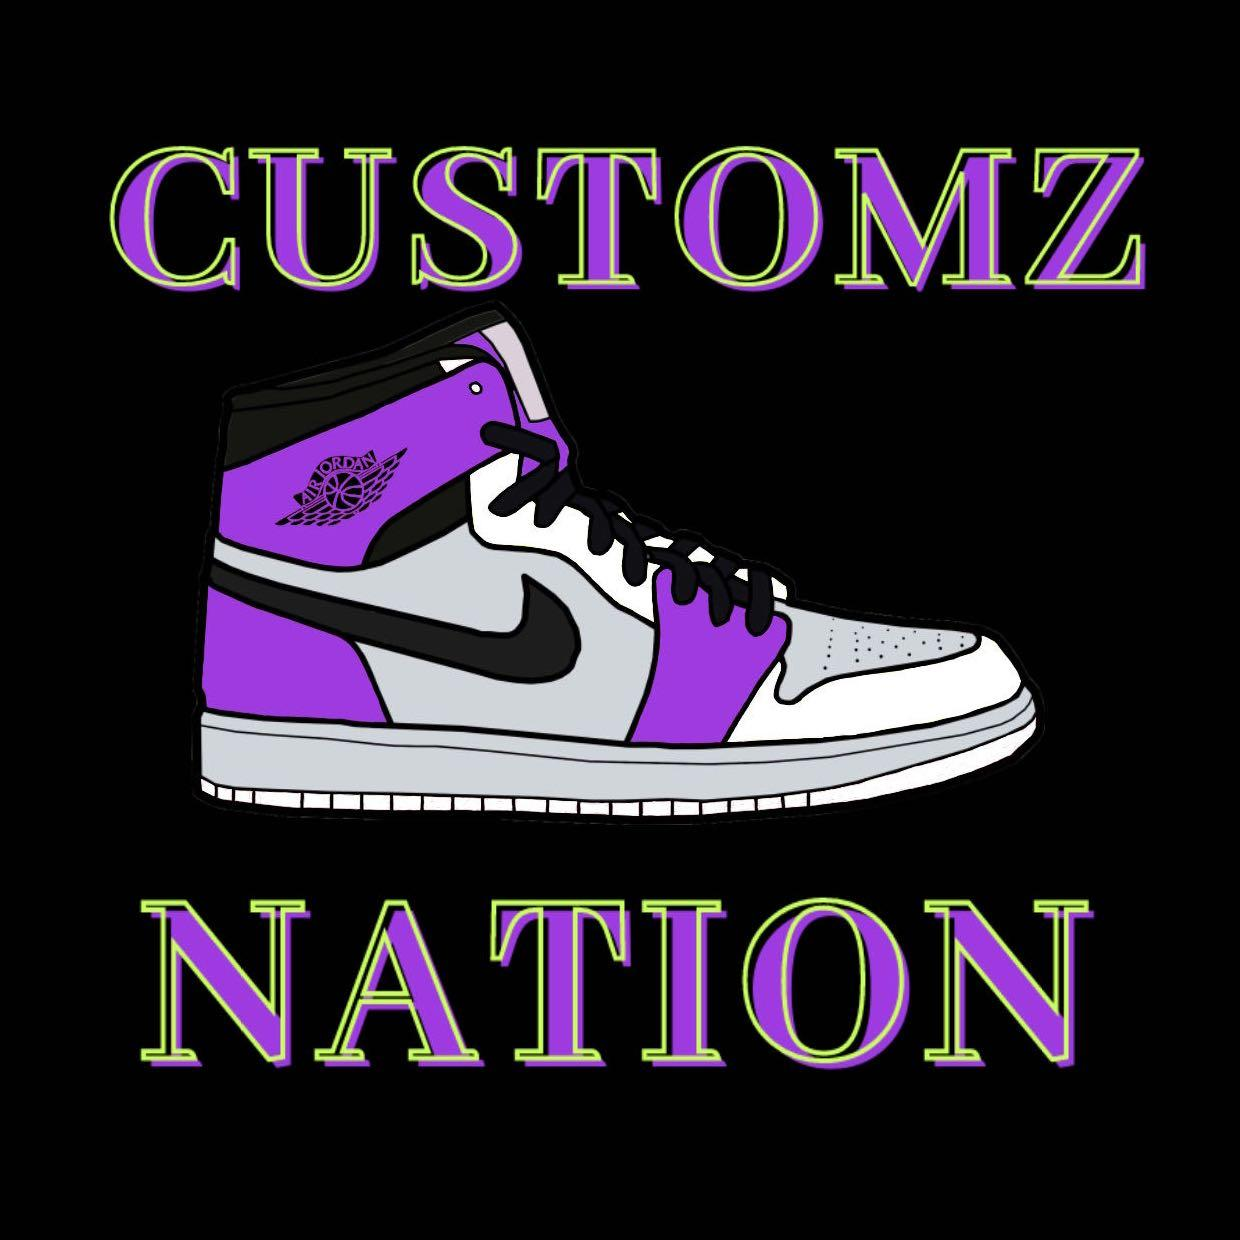 SEND IN ANY CUSTOM SHOE DESIGN FOR A QUOTE